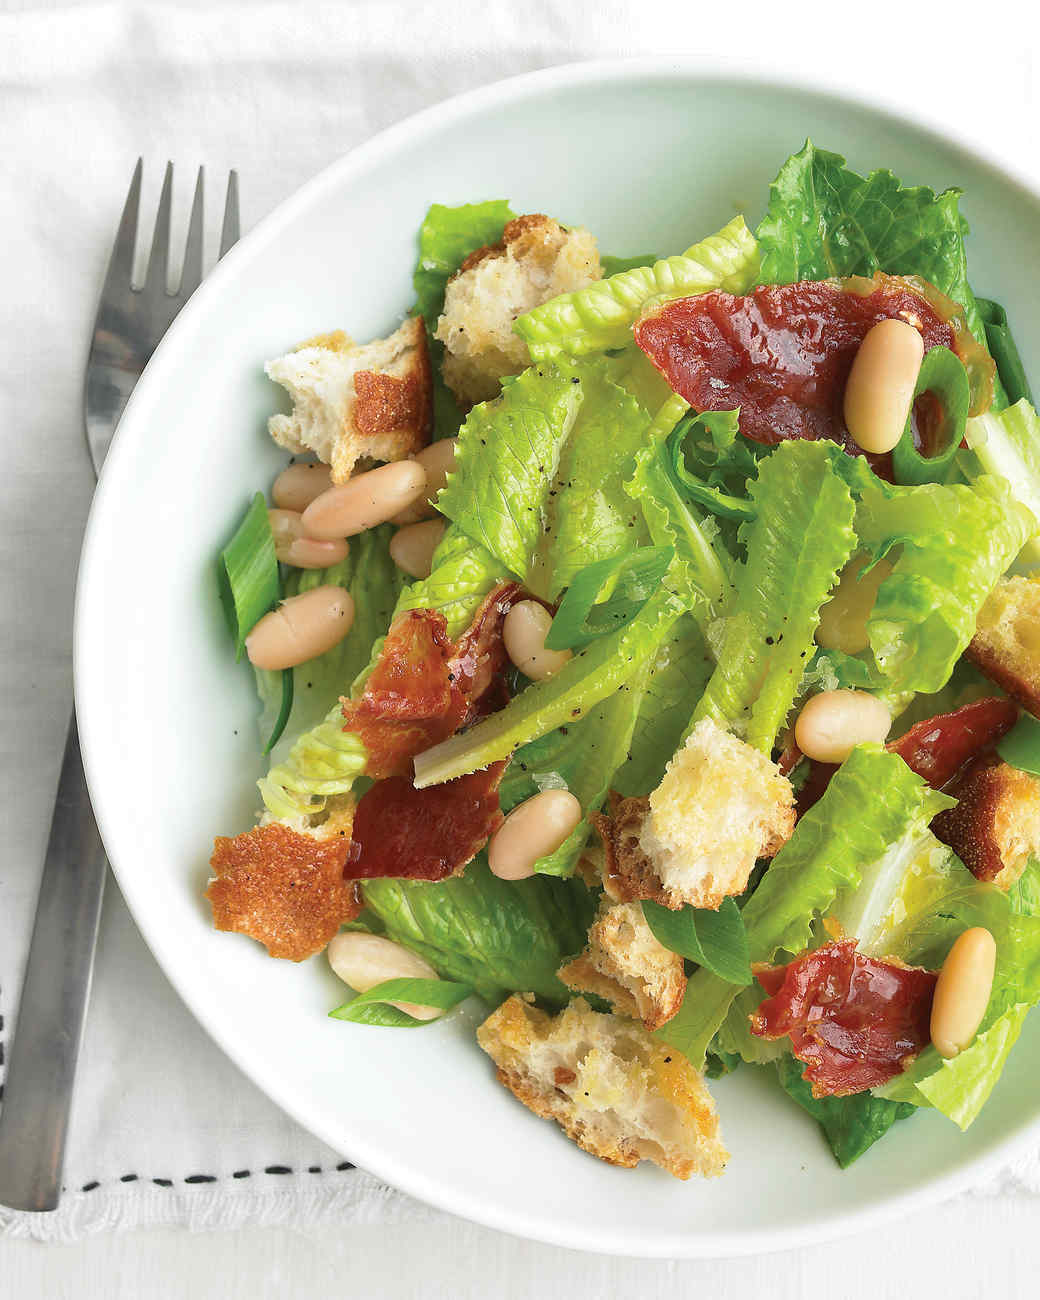 Romaine Salad with Crispy Prosciutto and White Beans